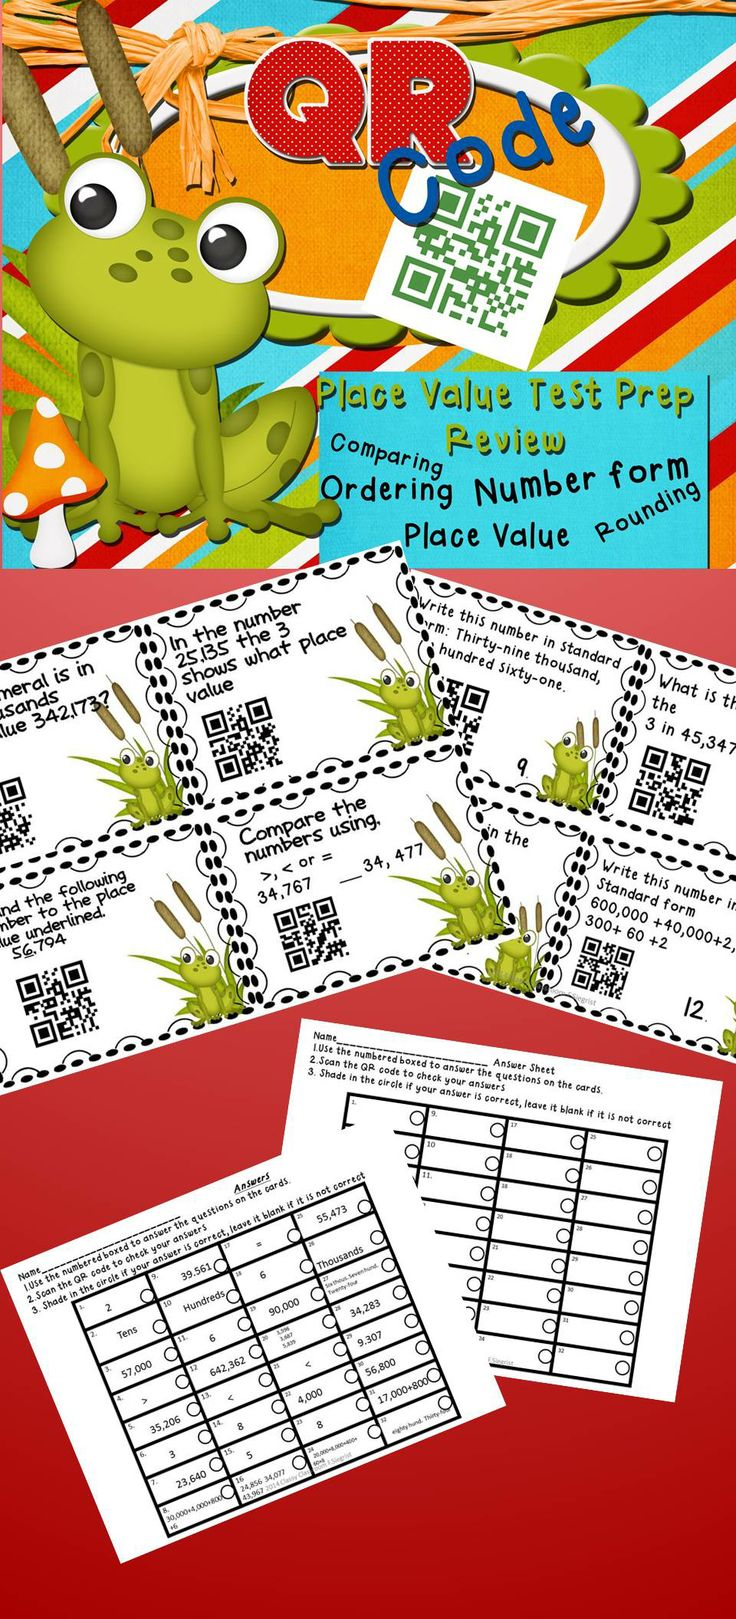 64 best qr codes images on pinterest qr codes augmented reality qr code task cards place value rounding comparing ordering number forms fandeluxe Image collections